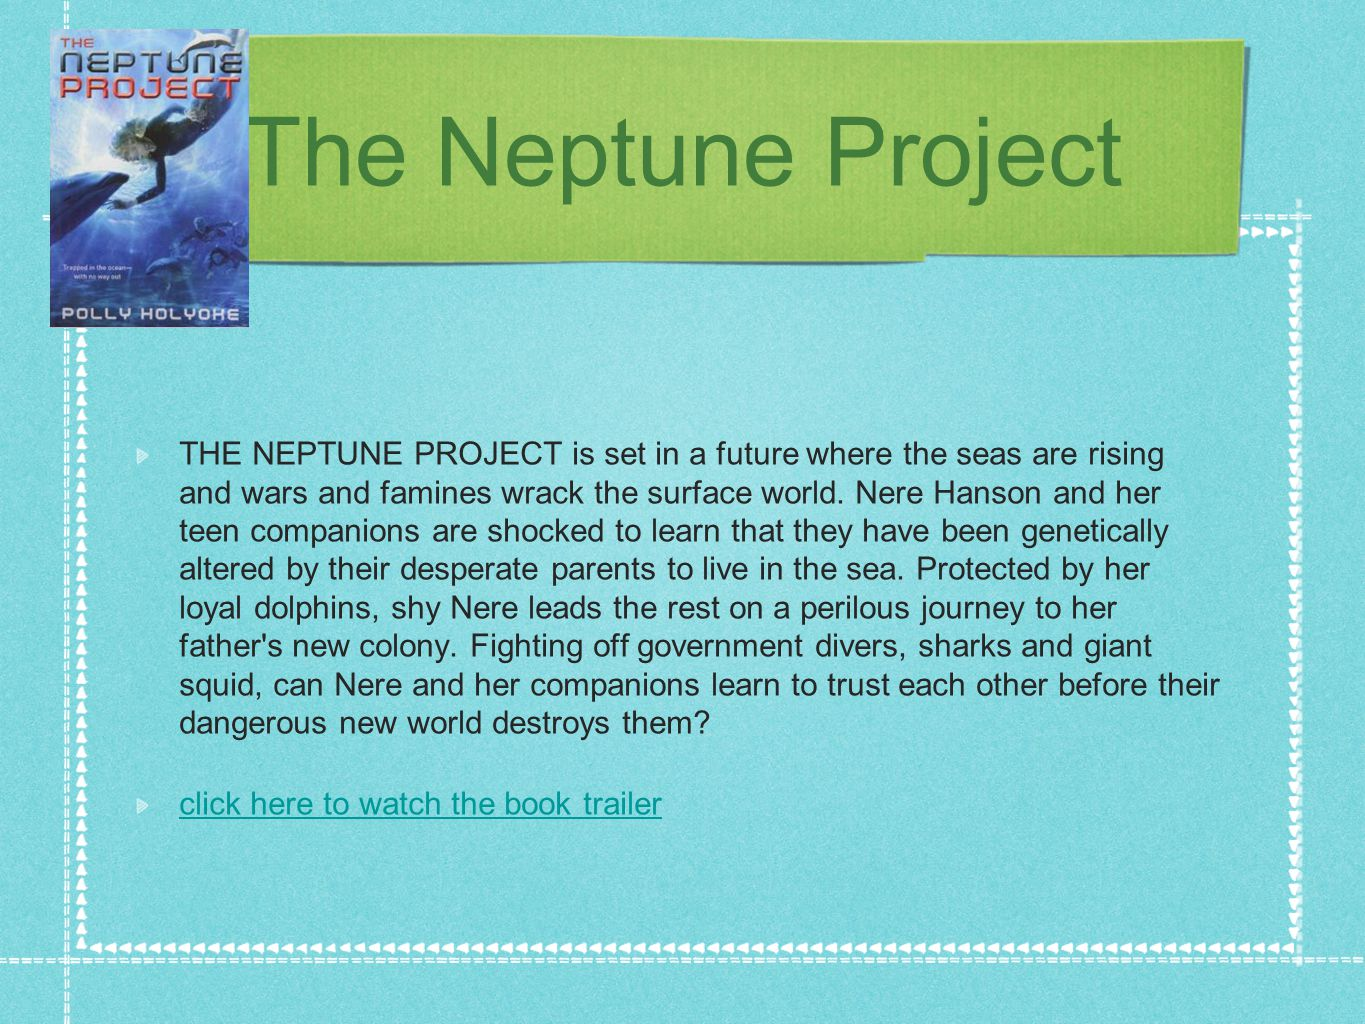 The Neptune Project THE NEPTUNE PROJECT is set in a future where the seas are rising and wars and famines wrack the surface world.